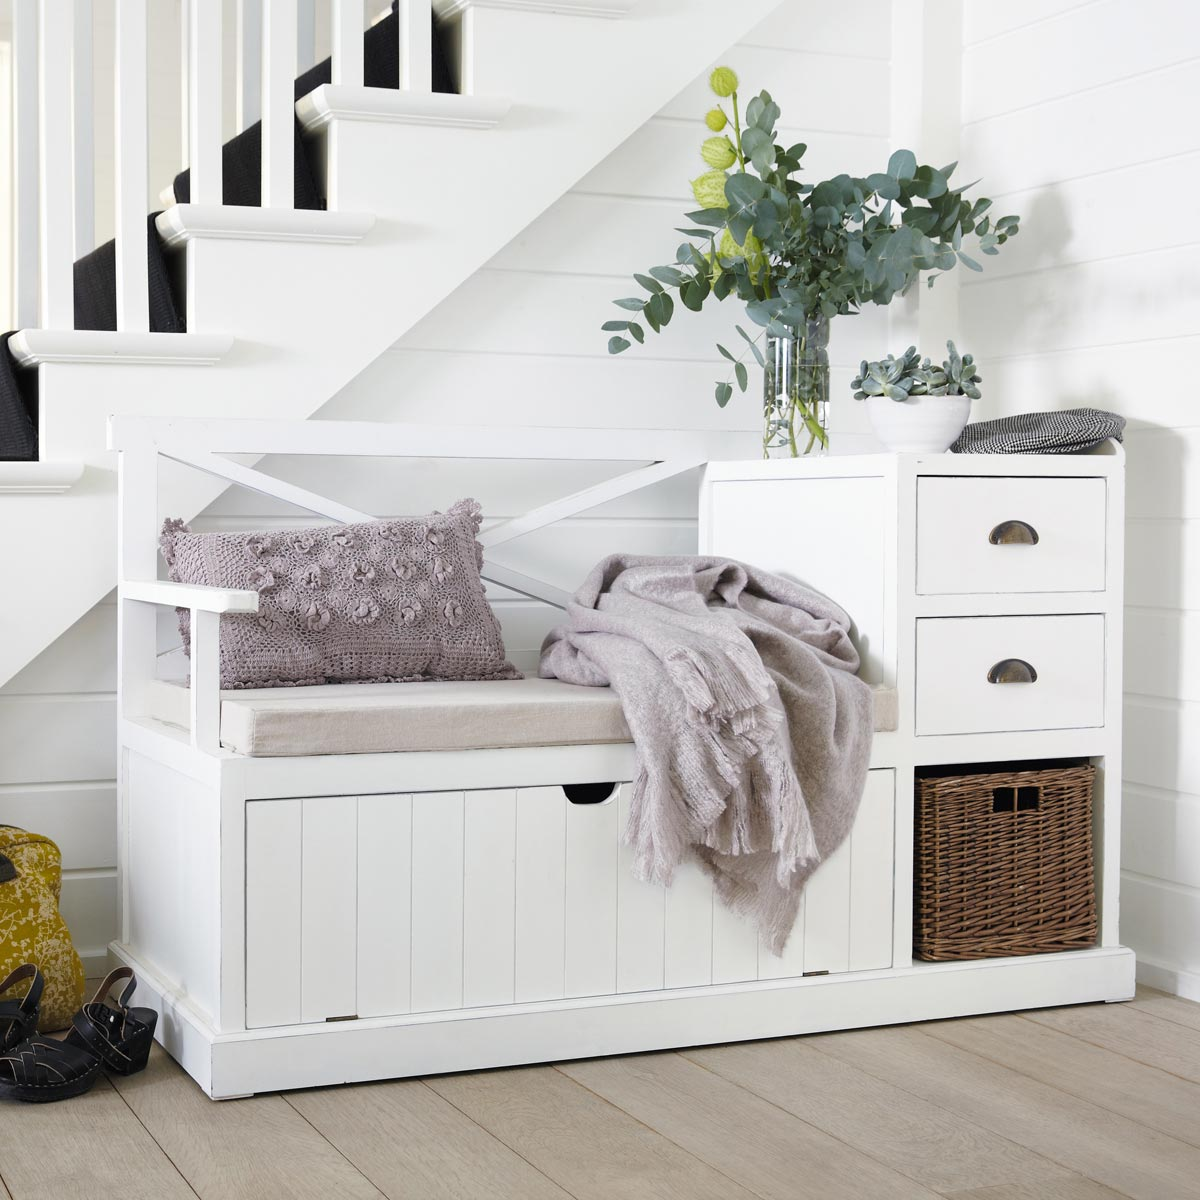 banc rangement enfant set de tiroirs de rangement sur roulettes pour lits bas asoral with banc. Black Bedroom Furniture Sets. Home Design Ideas